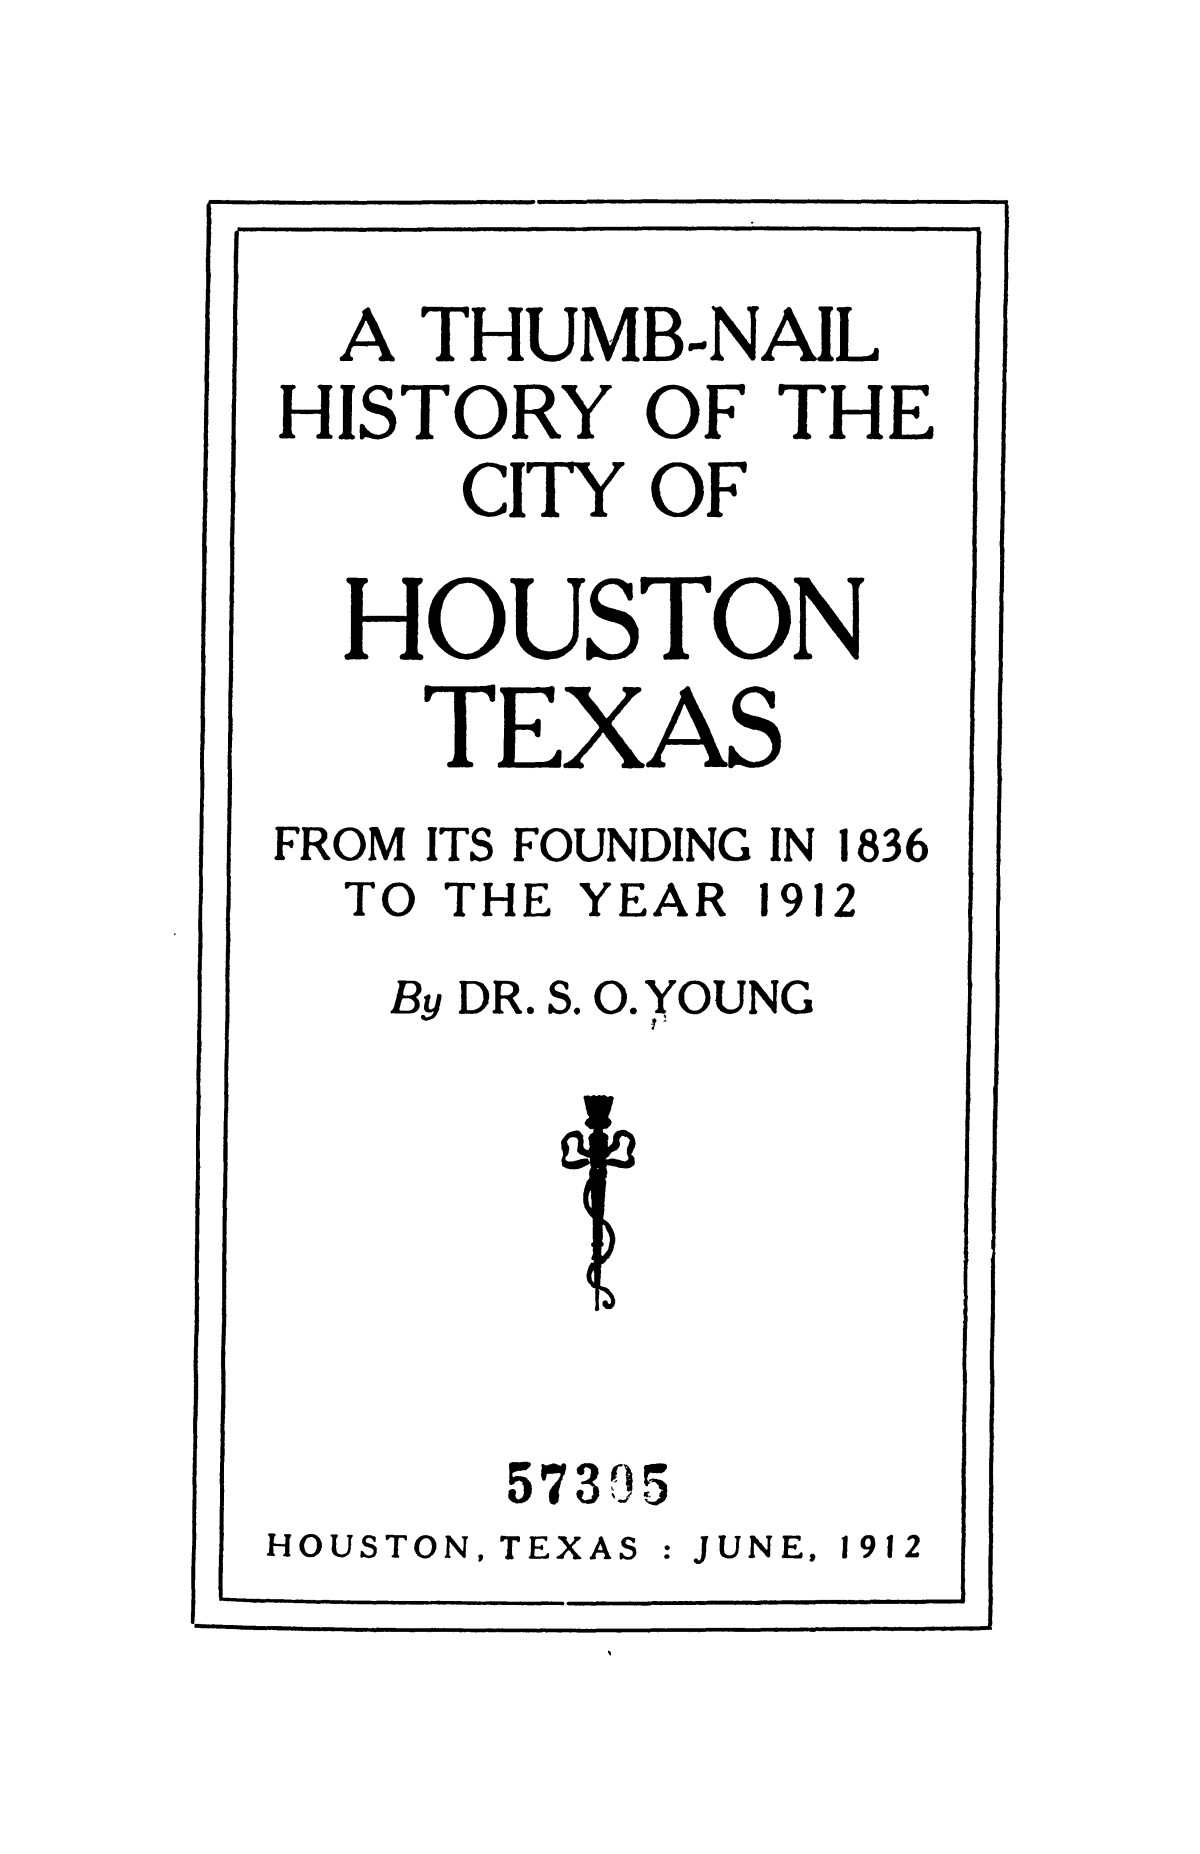 A thumb-nail history of the city of Houston, Texas, from its founding in 1836 to the year 1912                                                                                                      None